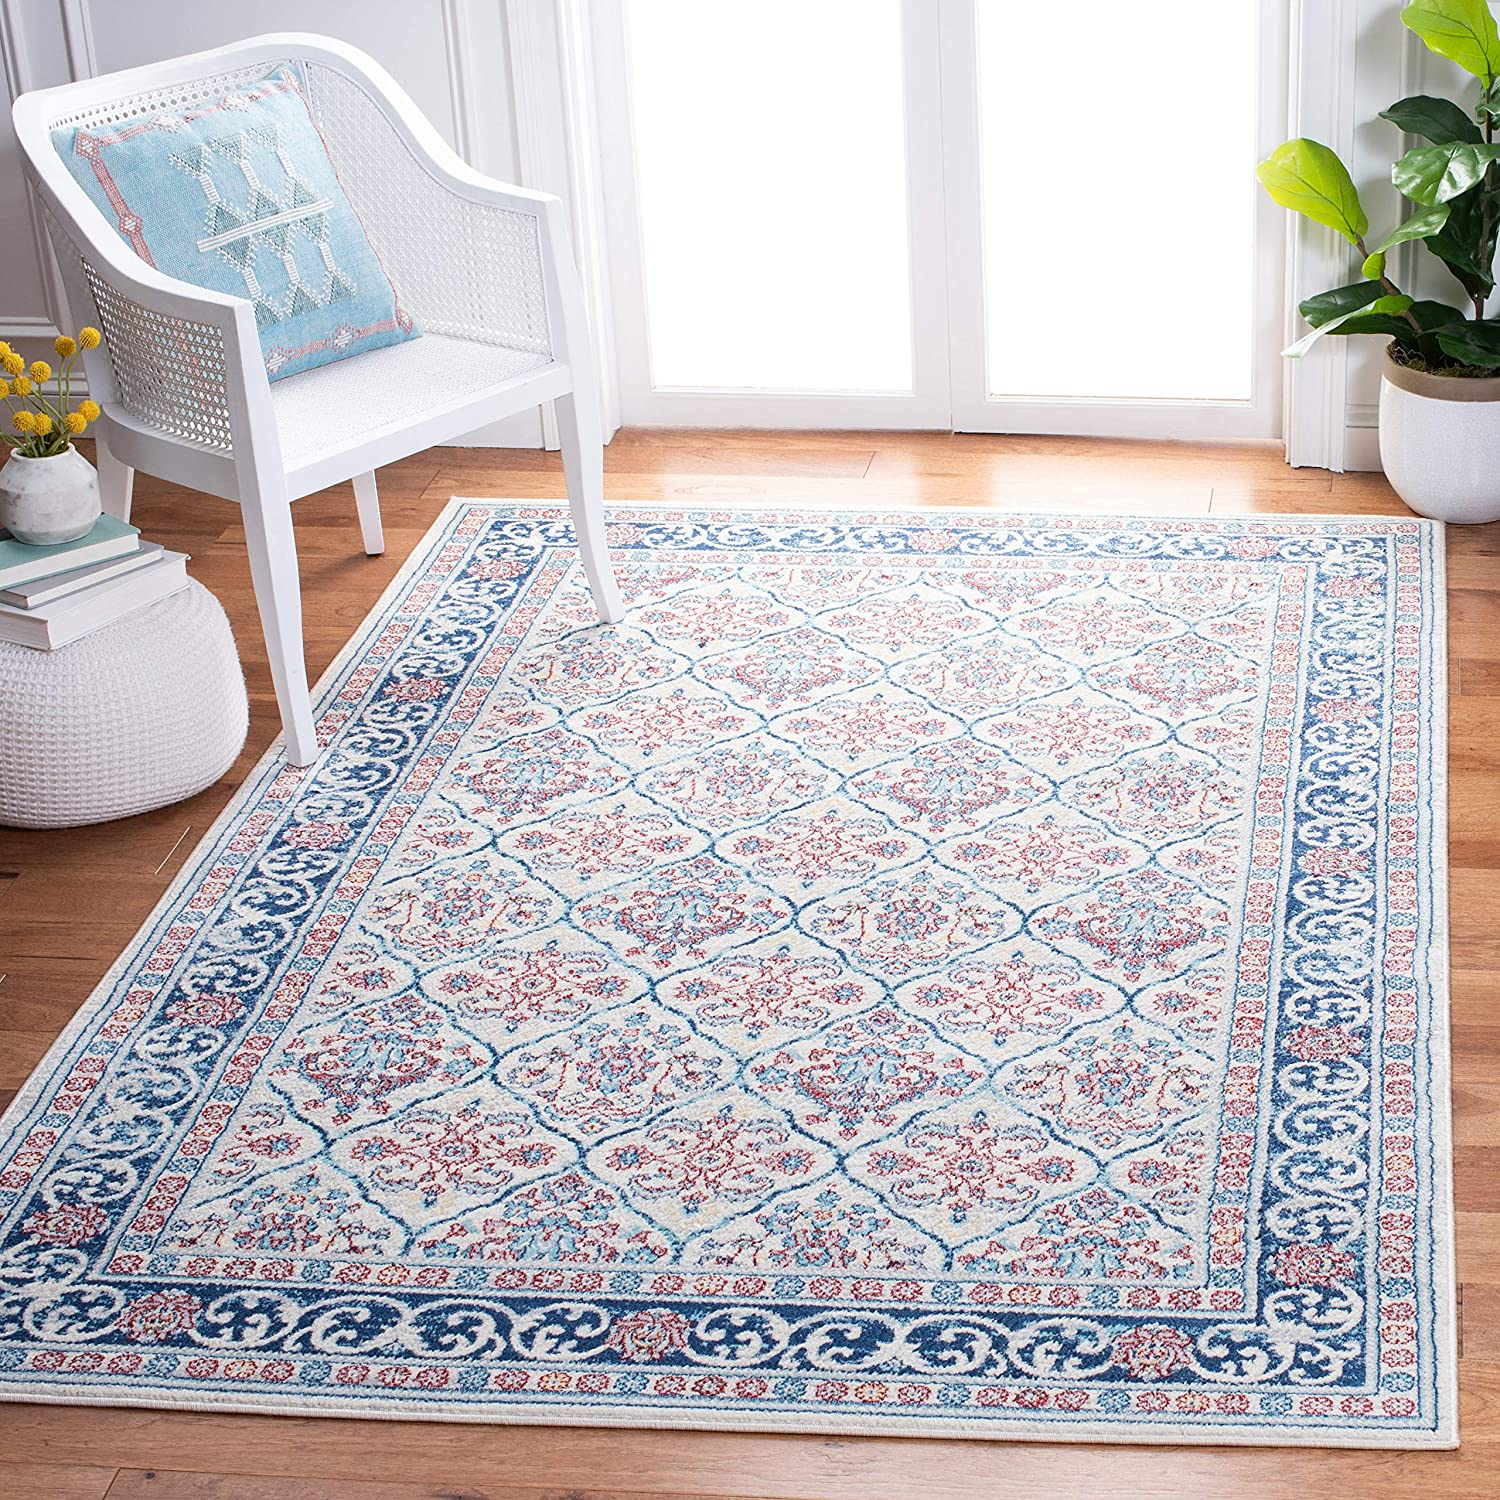 Safavieh Tampa Mall Brentwood Collection BNT870B Damask No Max 83% OFF Oriental Trellis